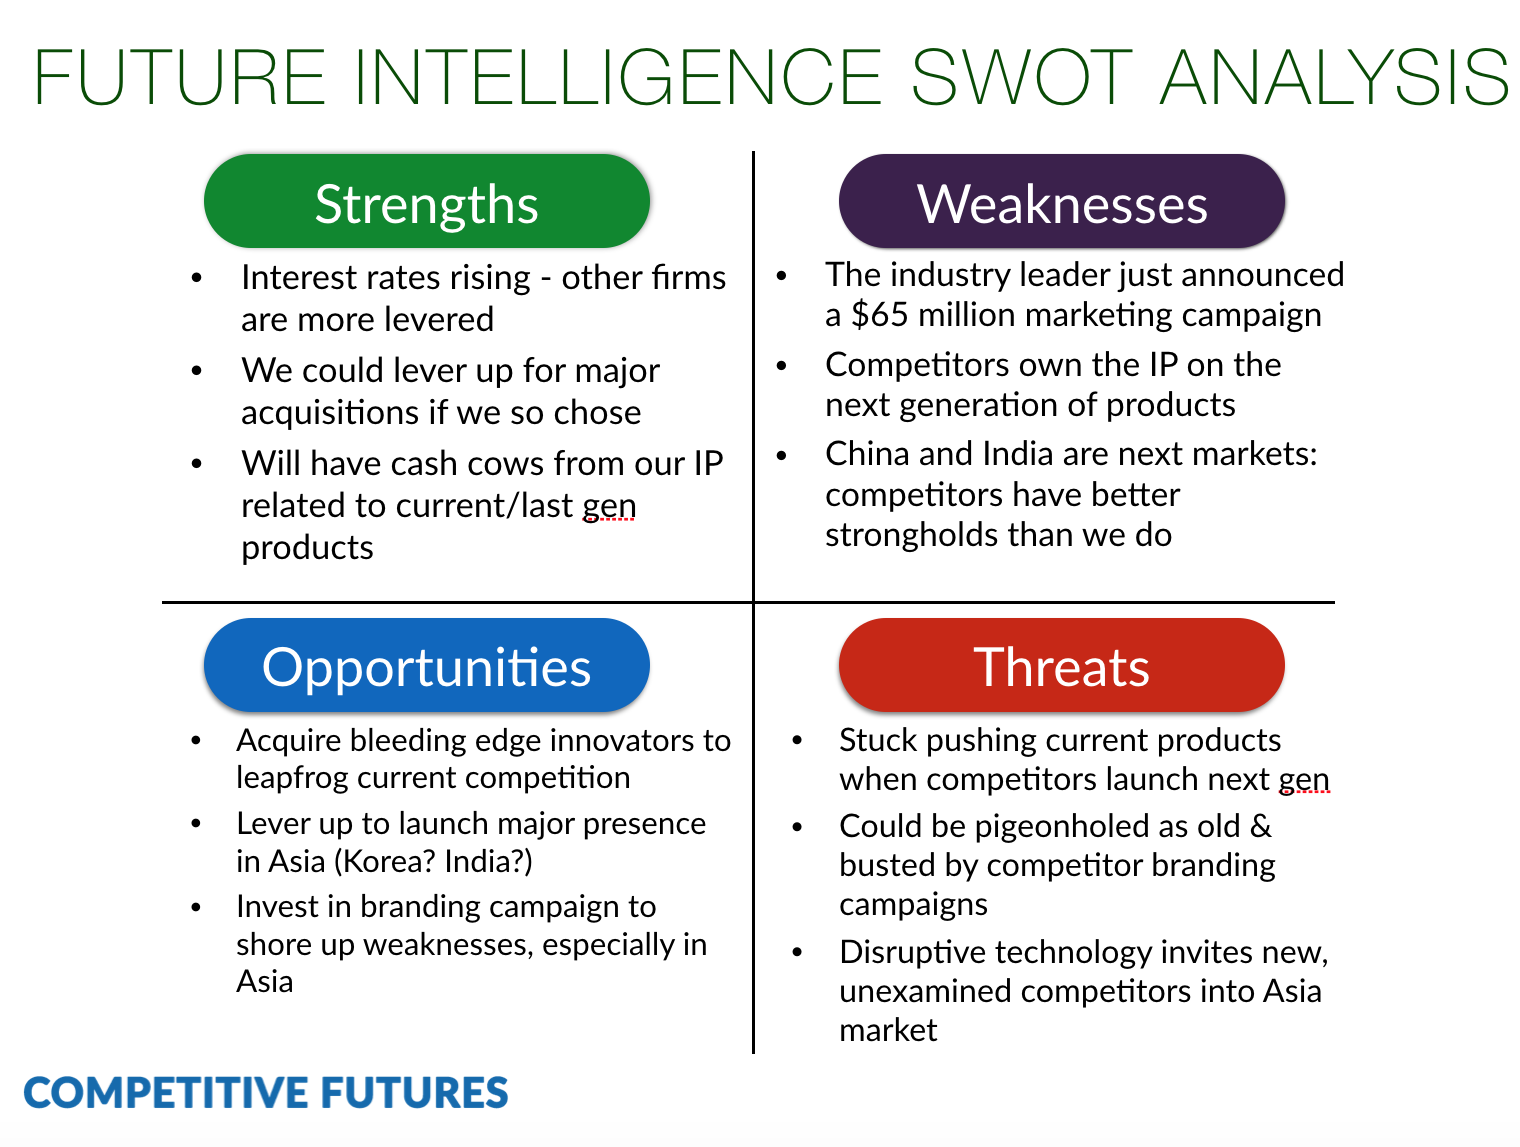 SWOT Analysis of Barclays